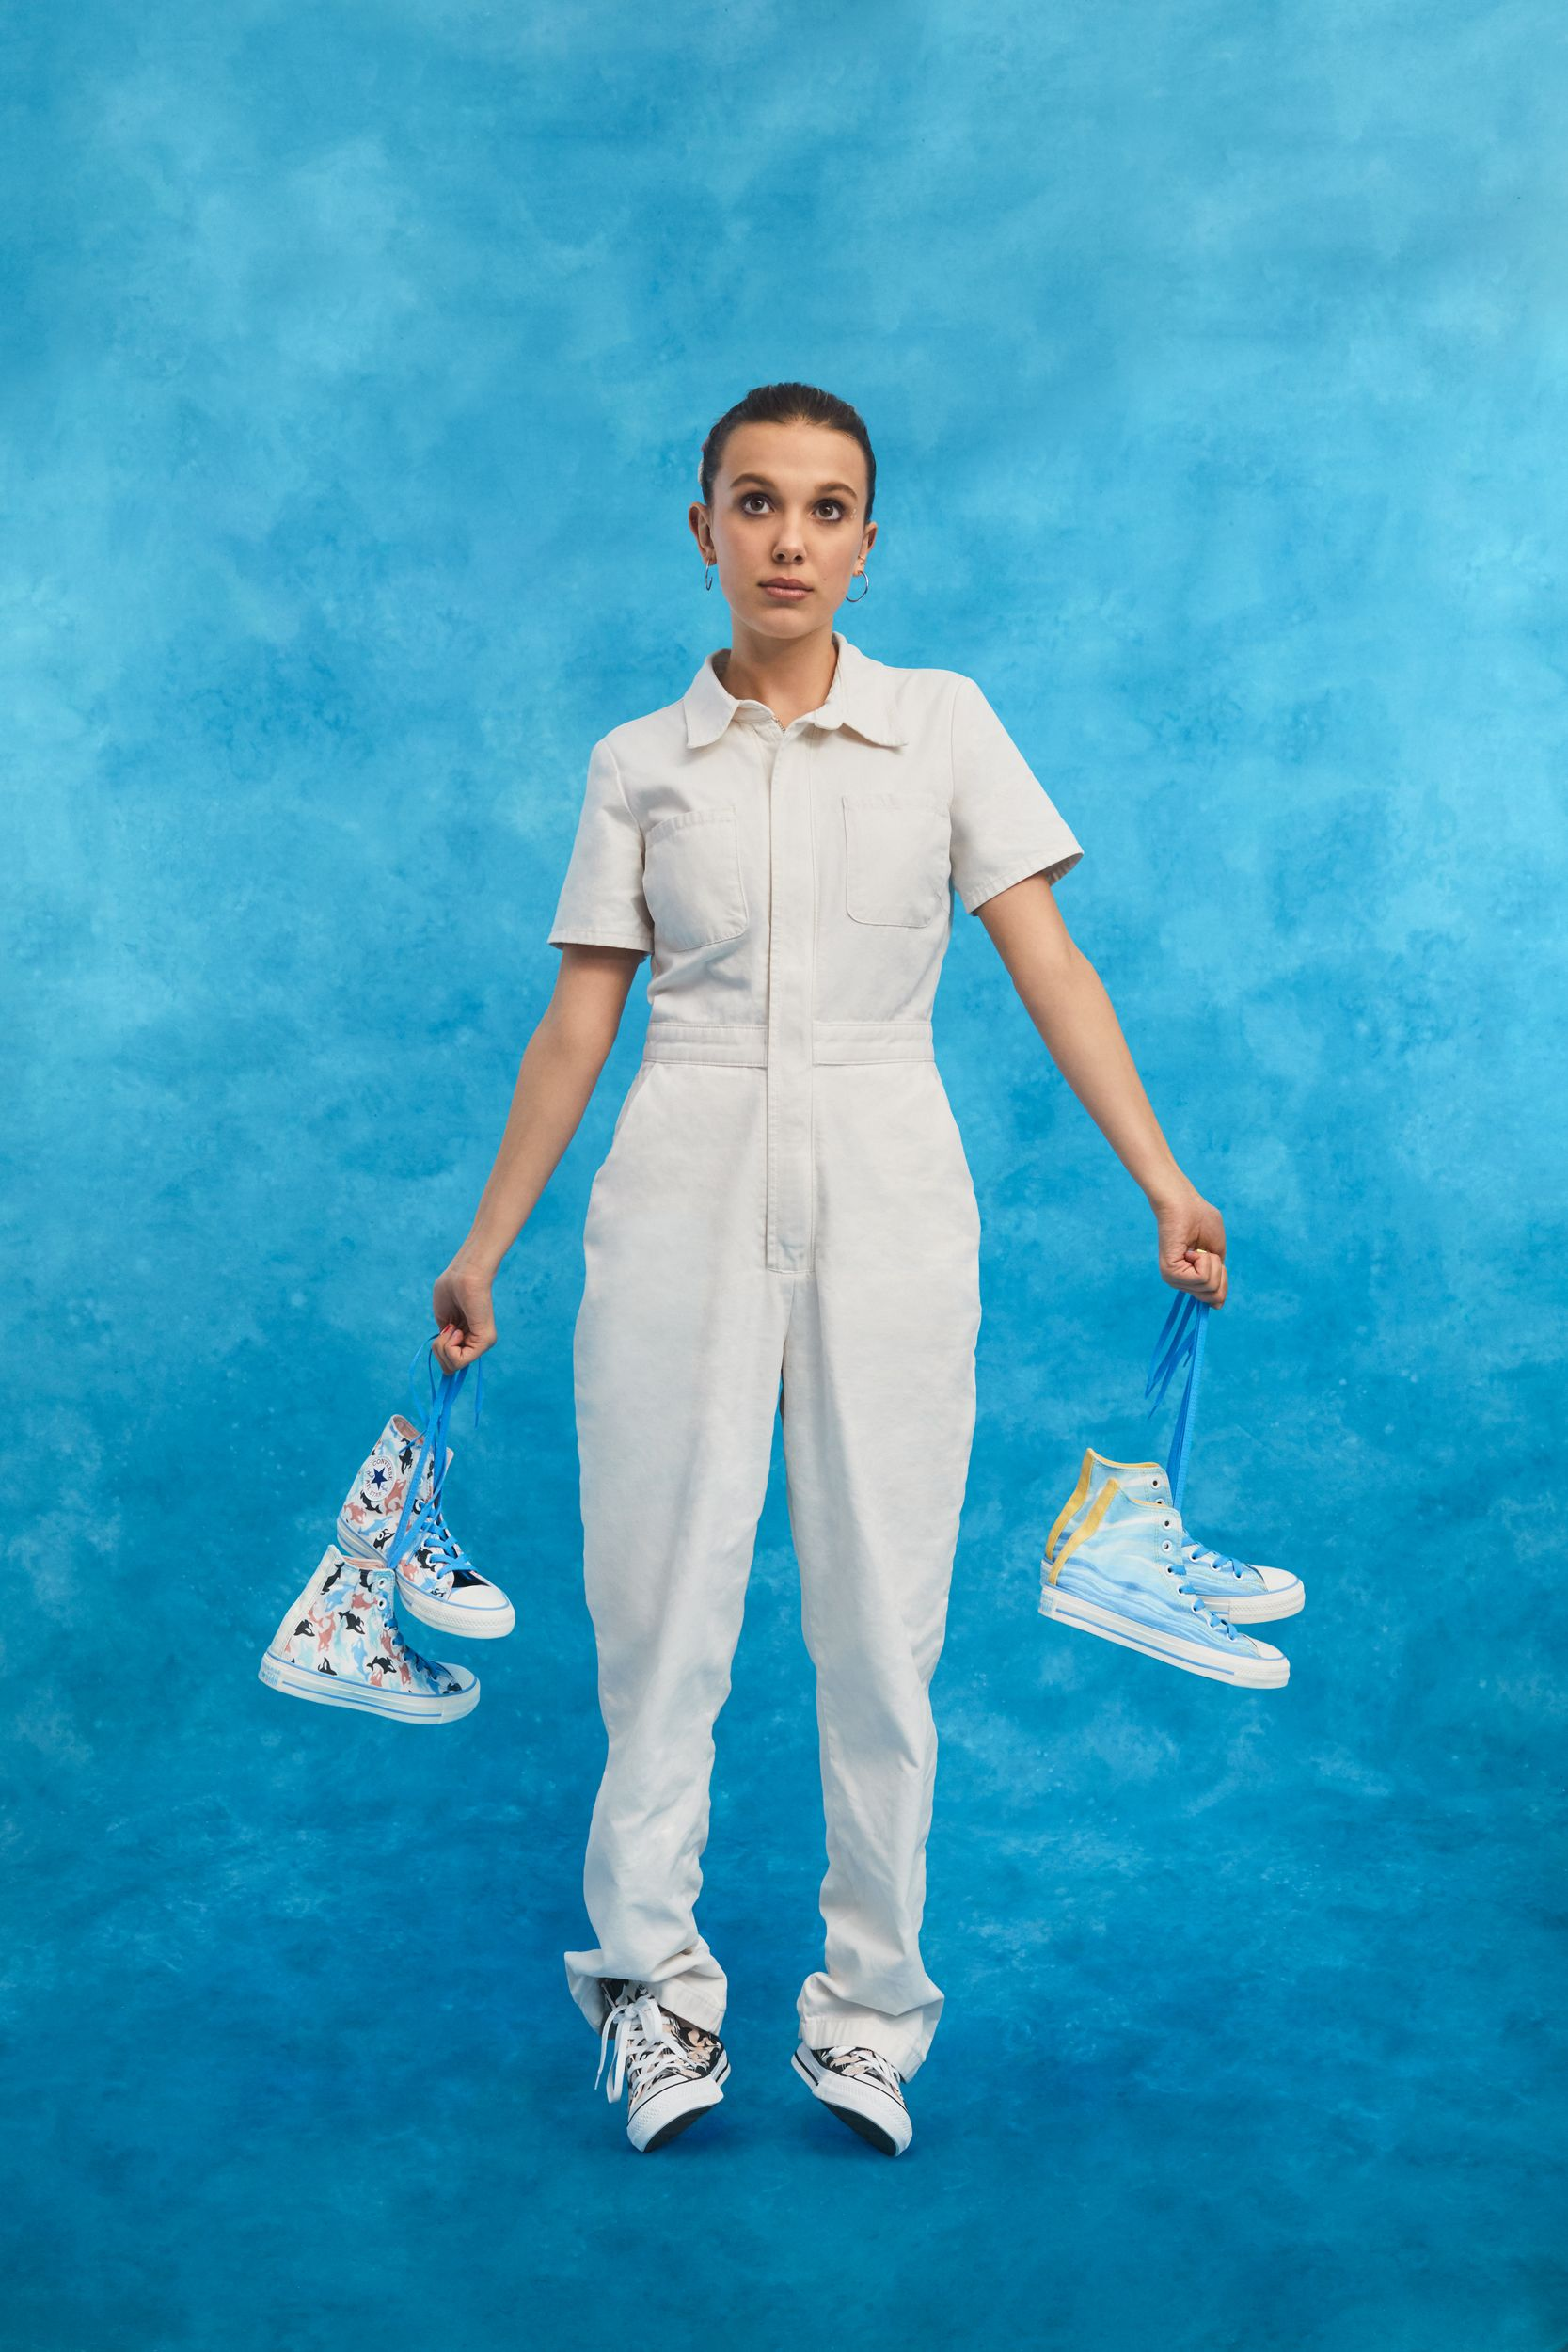 Millie By You A New Collection From Millie Bobby Brown That